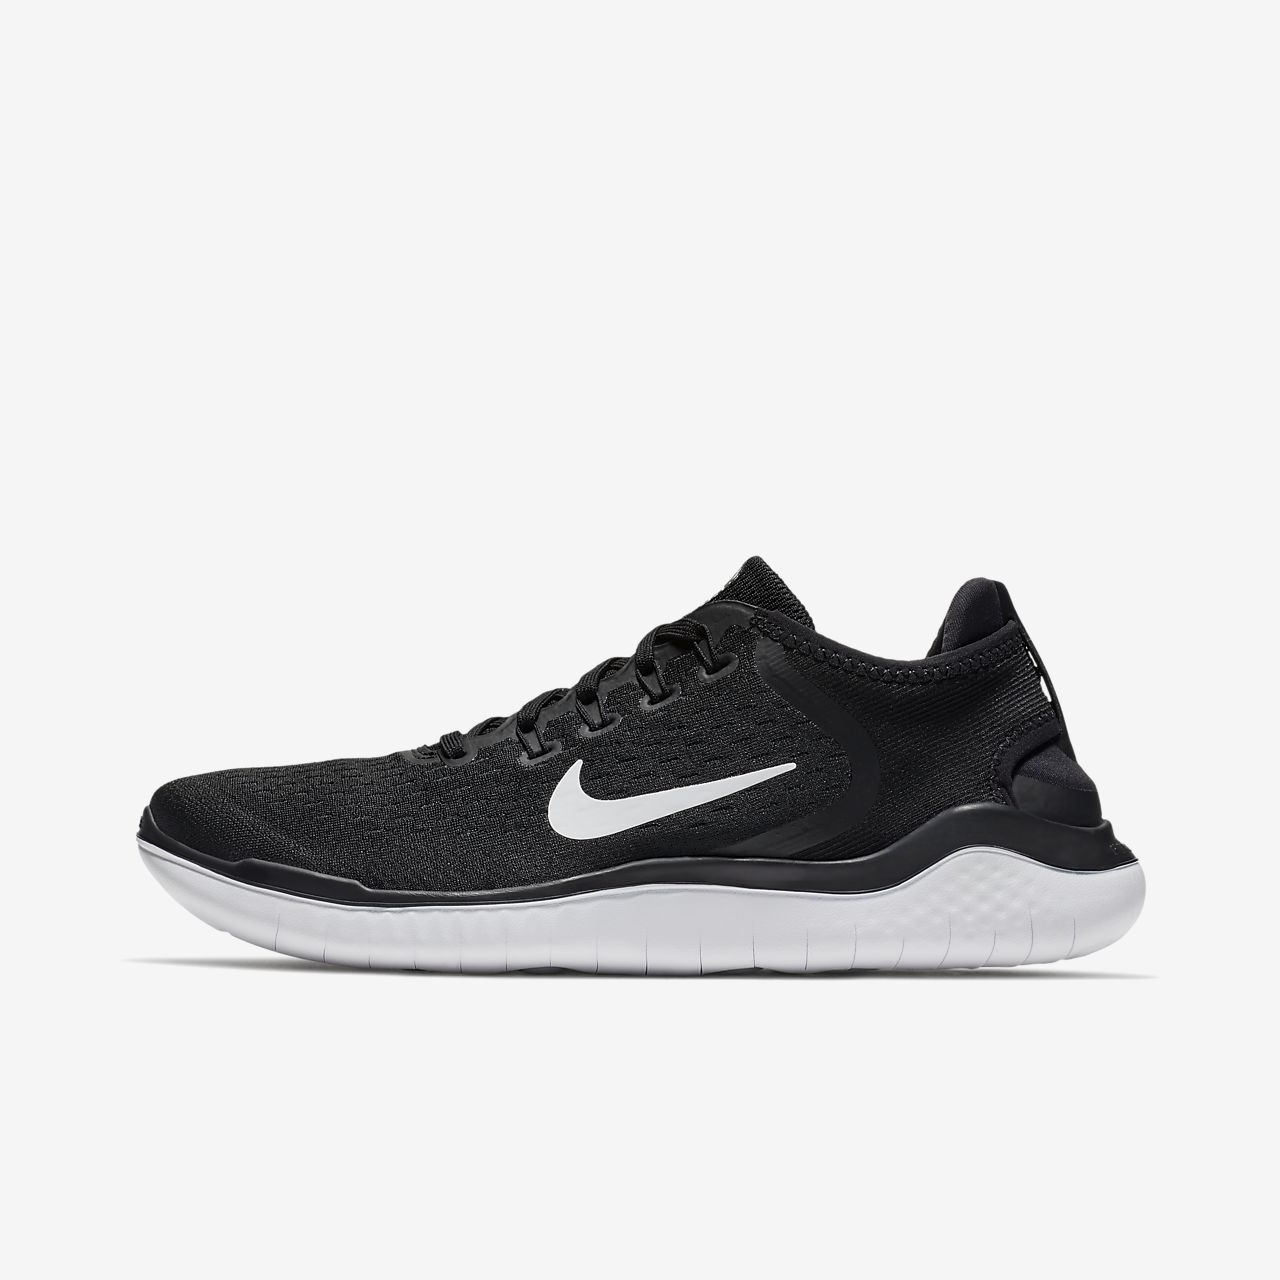 220d175dc78 Nike Free RN 2018 Men s Running Shoe. Nike.com IN